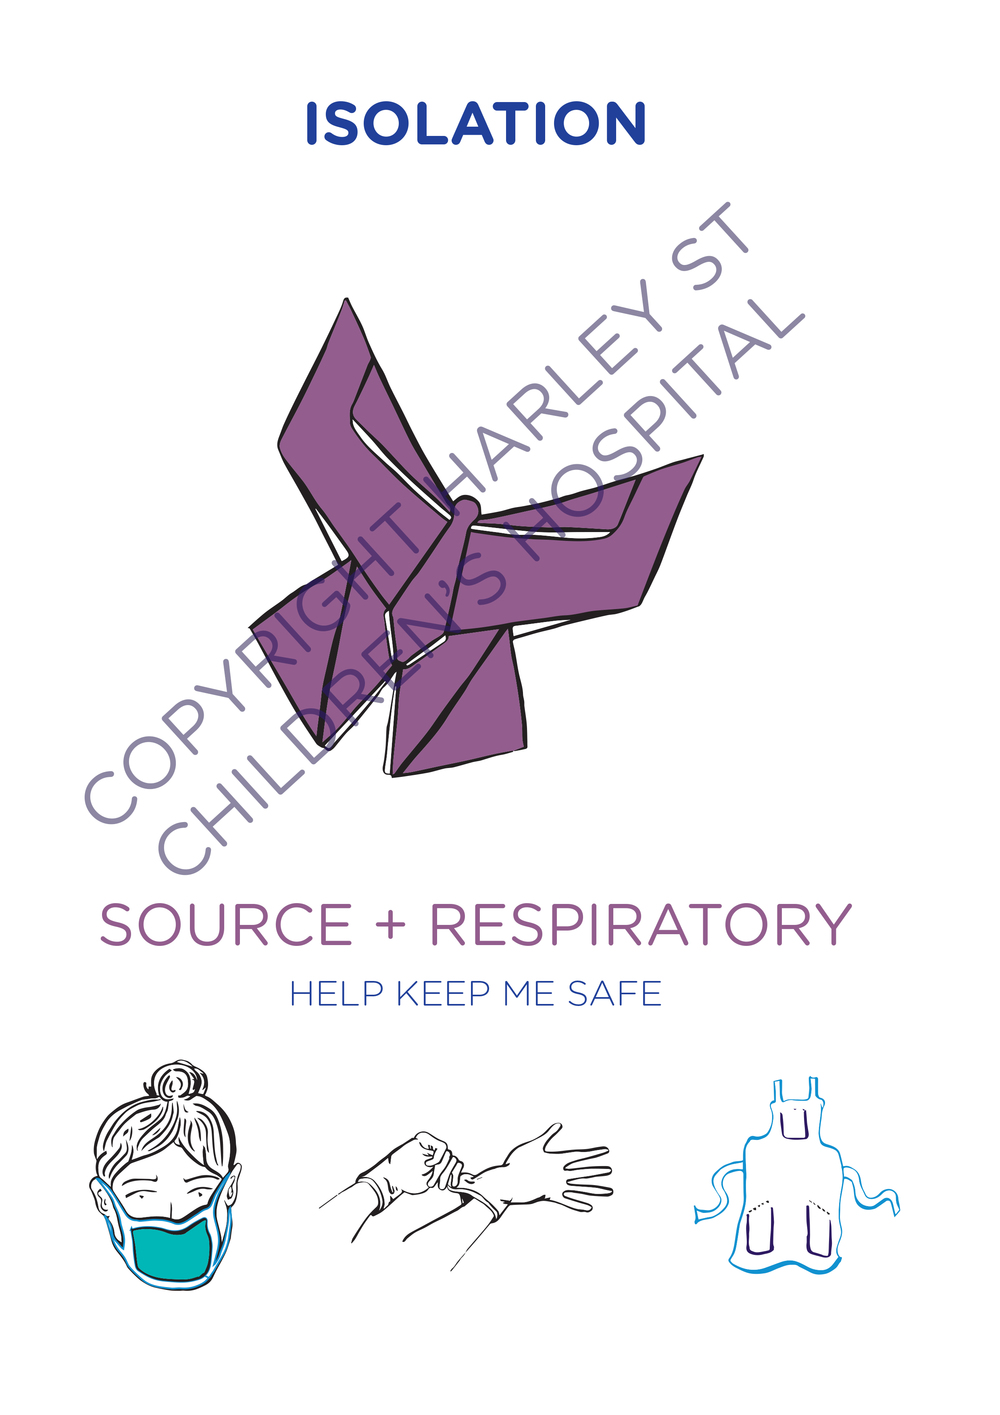 Harley Street Clinic: Isolation Door Sign (Respiratory)